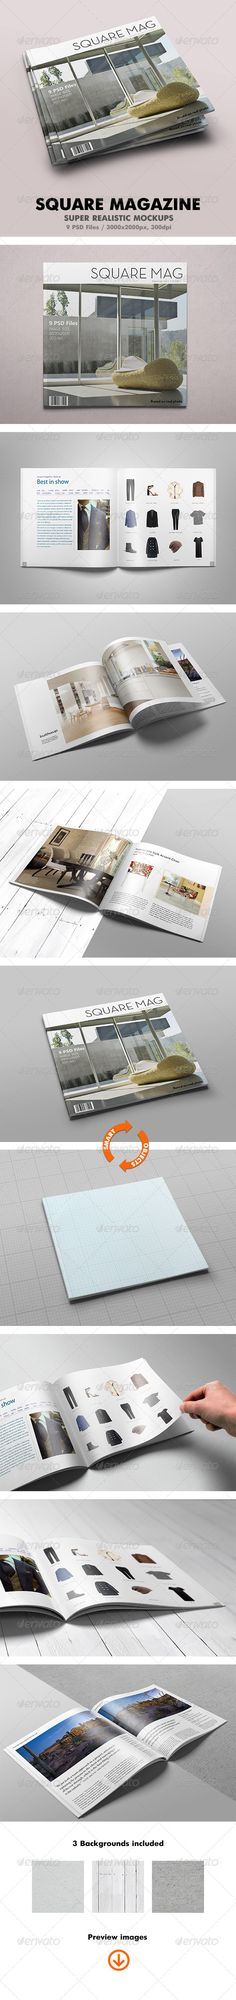 Square Magazine Mock Up Magazinemockup Journalmockup Download Graphicriver